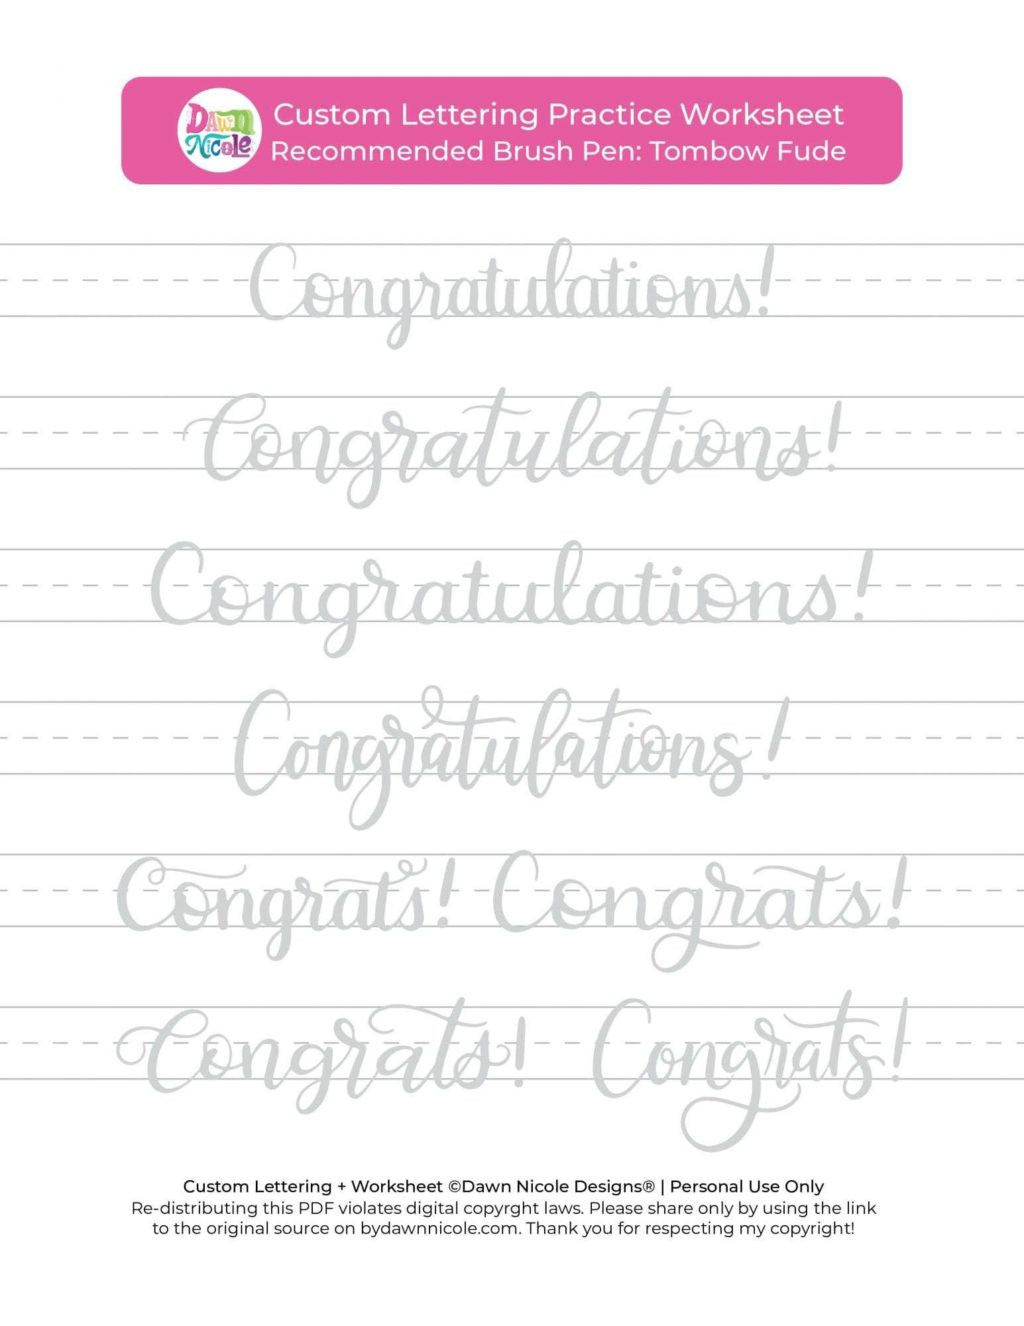 Free Calligraphy Worksheets Printable Worksheet Congratulations Brush Calligraphy Practice